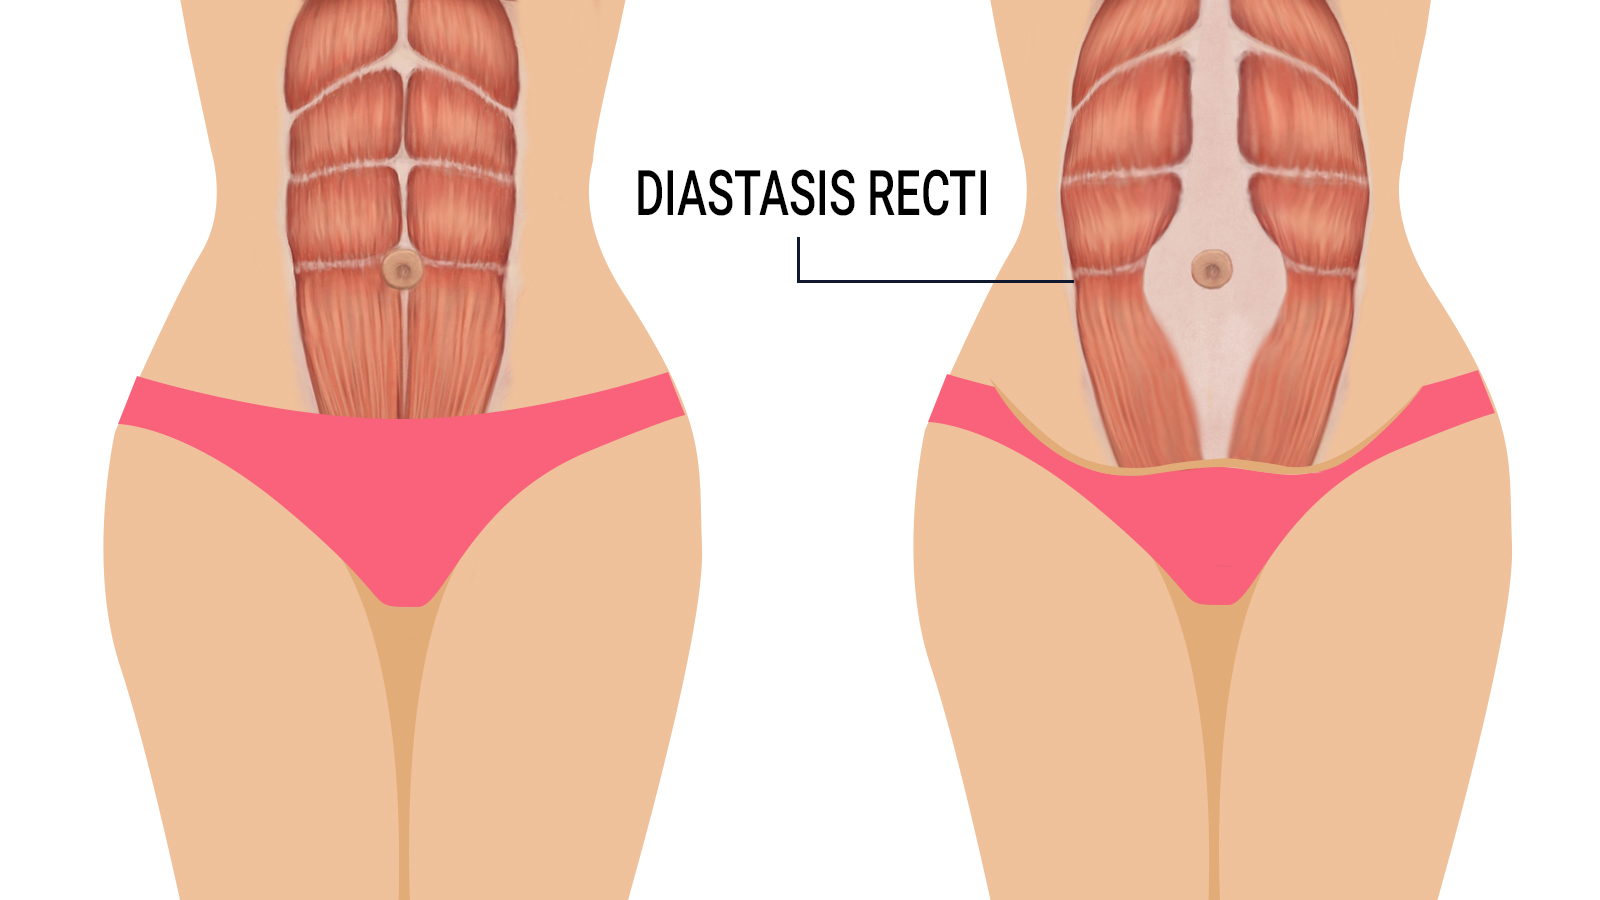 diastasis-recti-signs